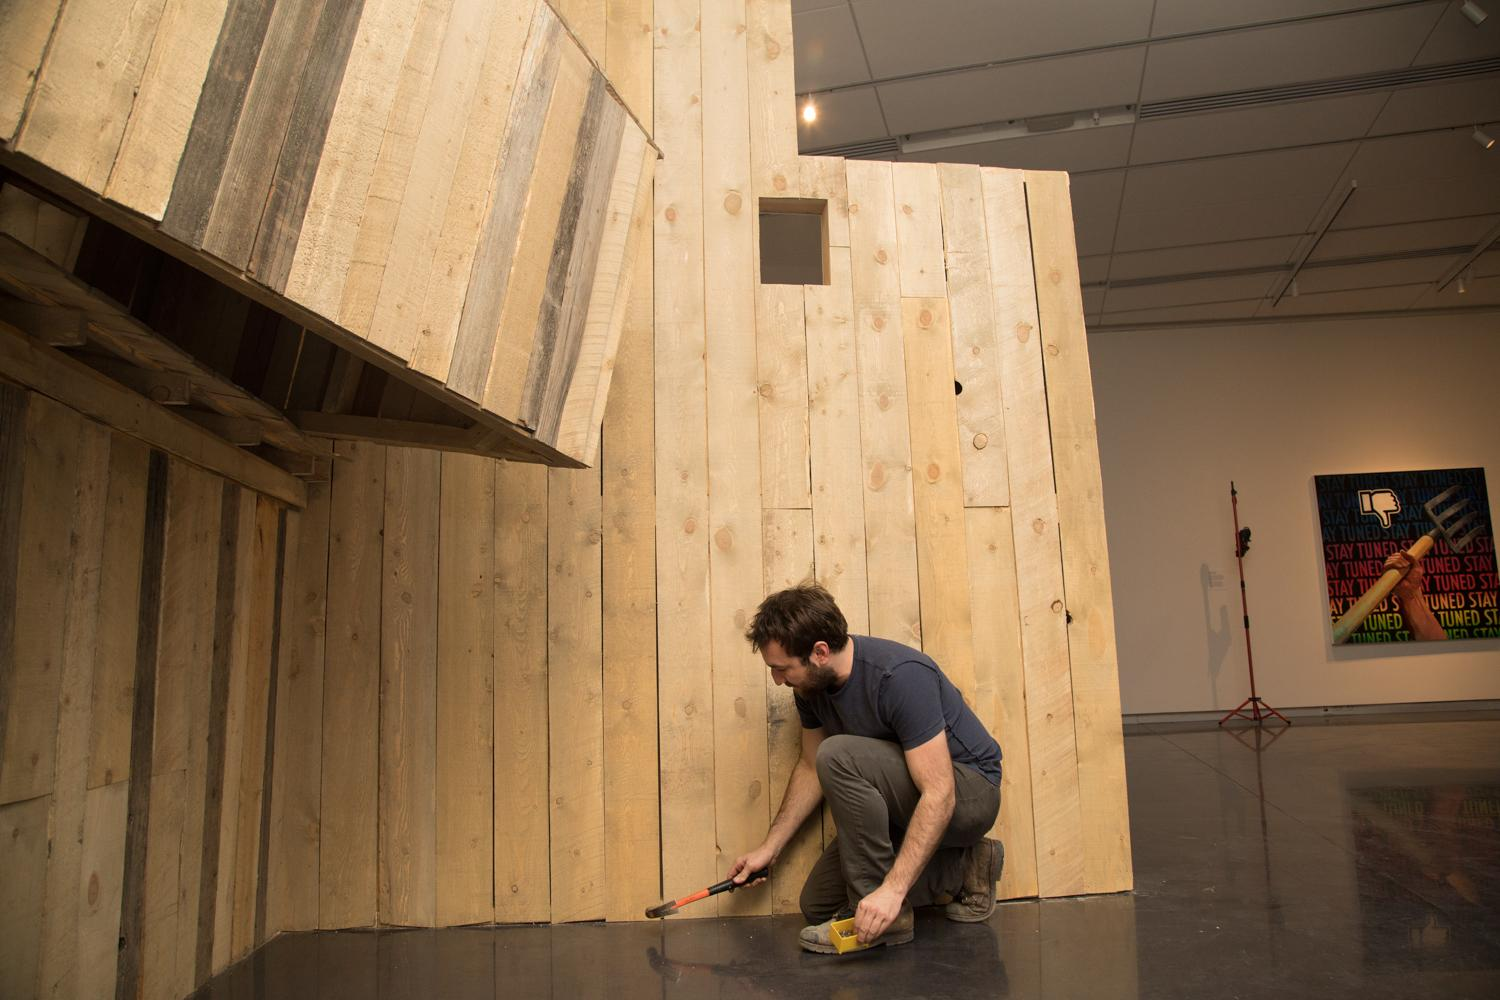 MFA candidate and graduate student, Aaron Treher, works on his large scale wood installation and makes some adjustments in preparation for the master of fine arts thesis exhibition in the gallery of the art museum.